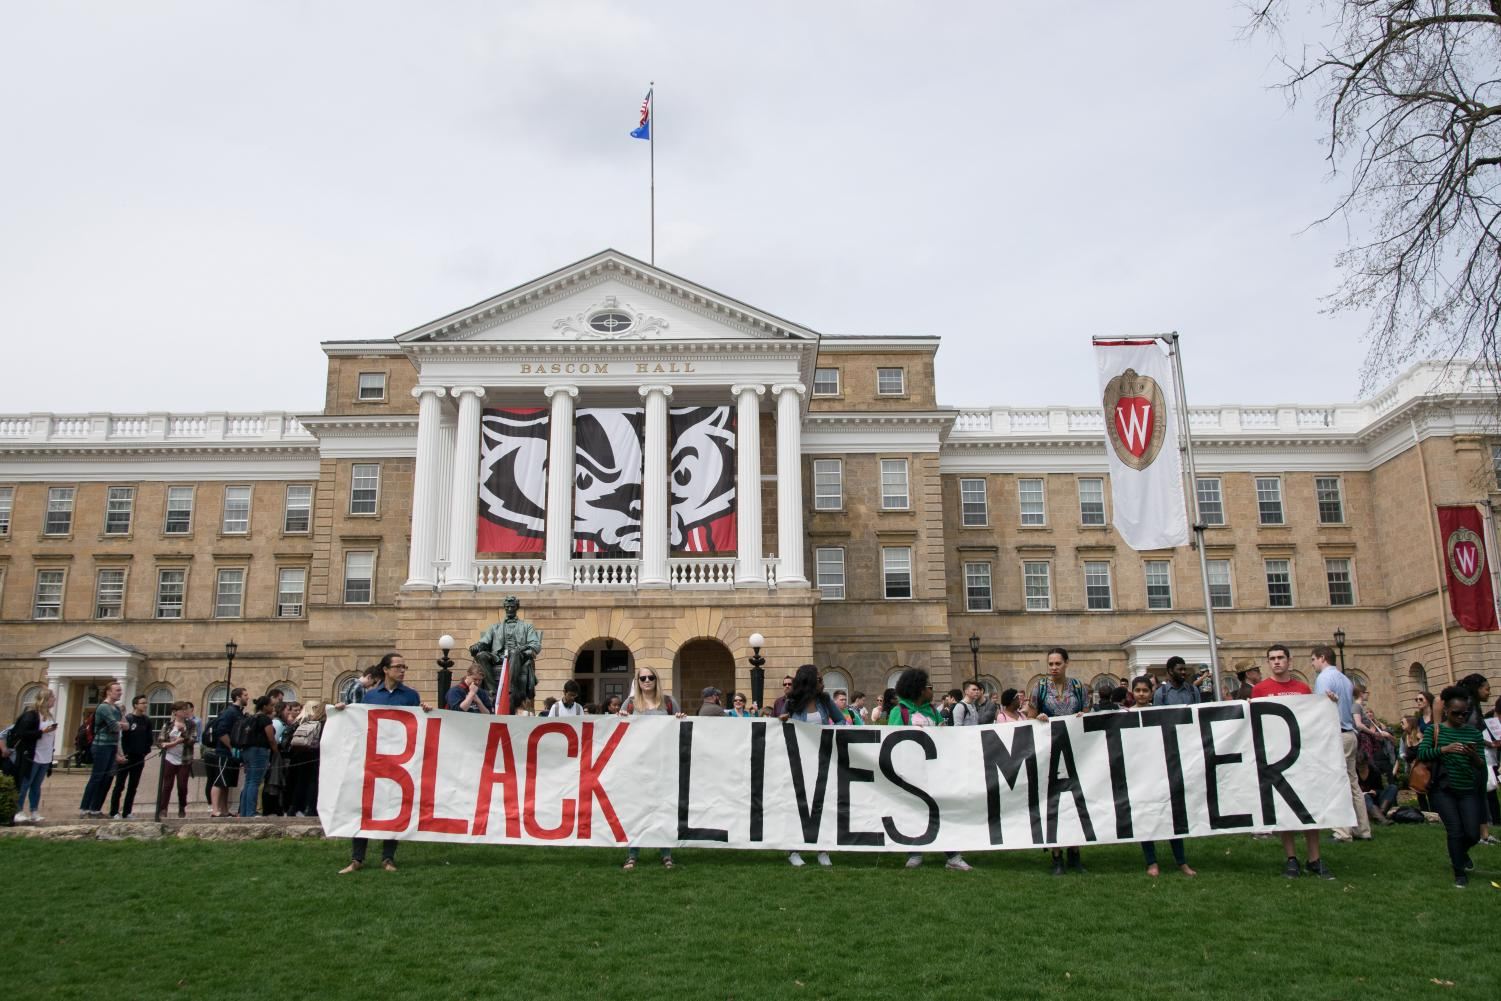 Pictured above are University of Wisconsin Madison students on April 21st, 2016 protesting the arrest of fellow student Denzel McDonald. With the passing of the Wisconsin Senate's 229 Bill student protest rights have been under question.